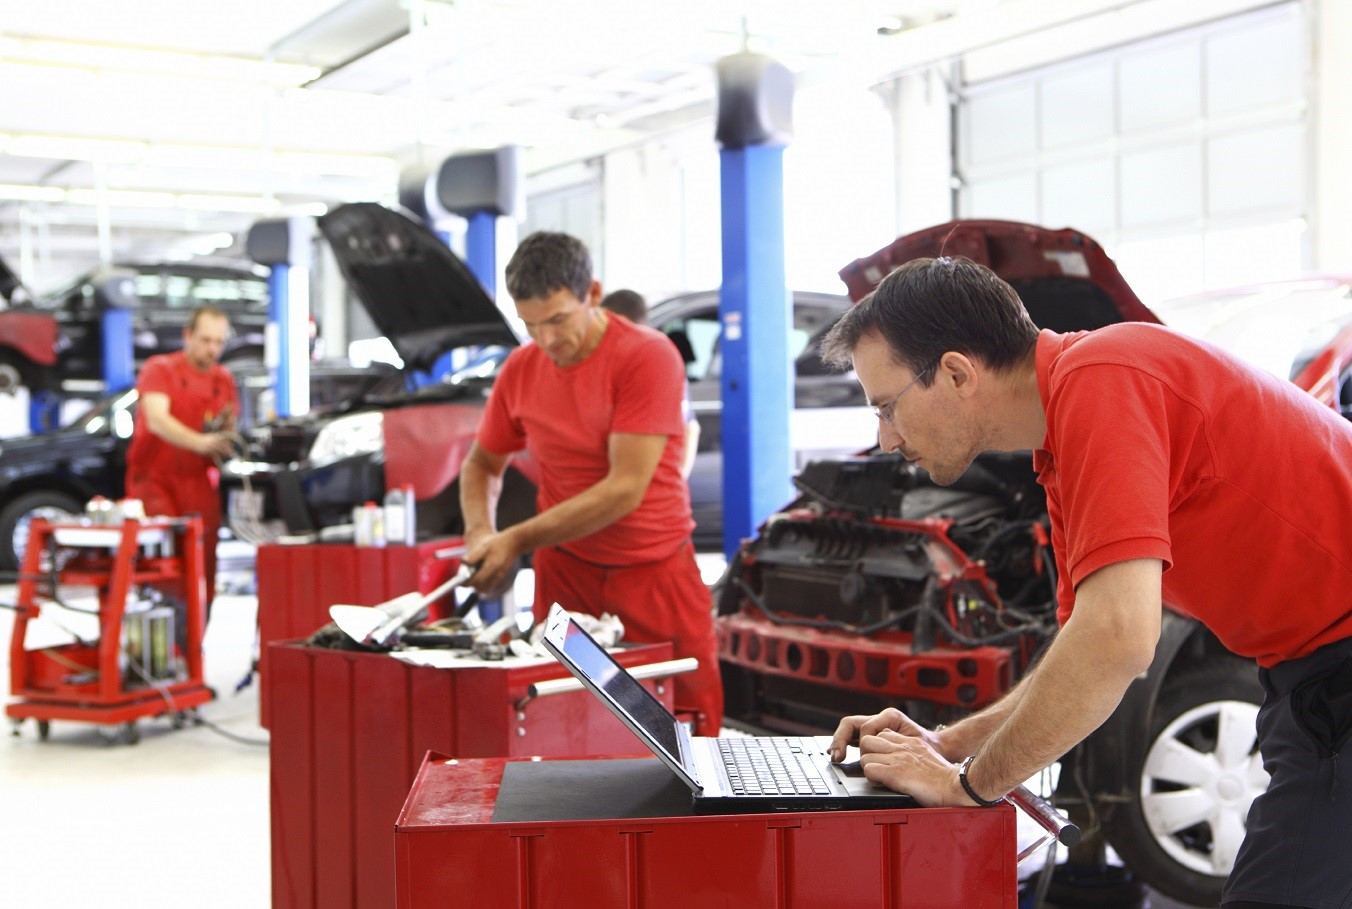 Trust Our Technicians to Certify Your Ride!